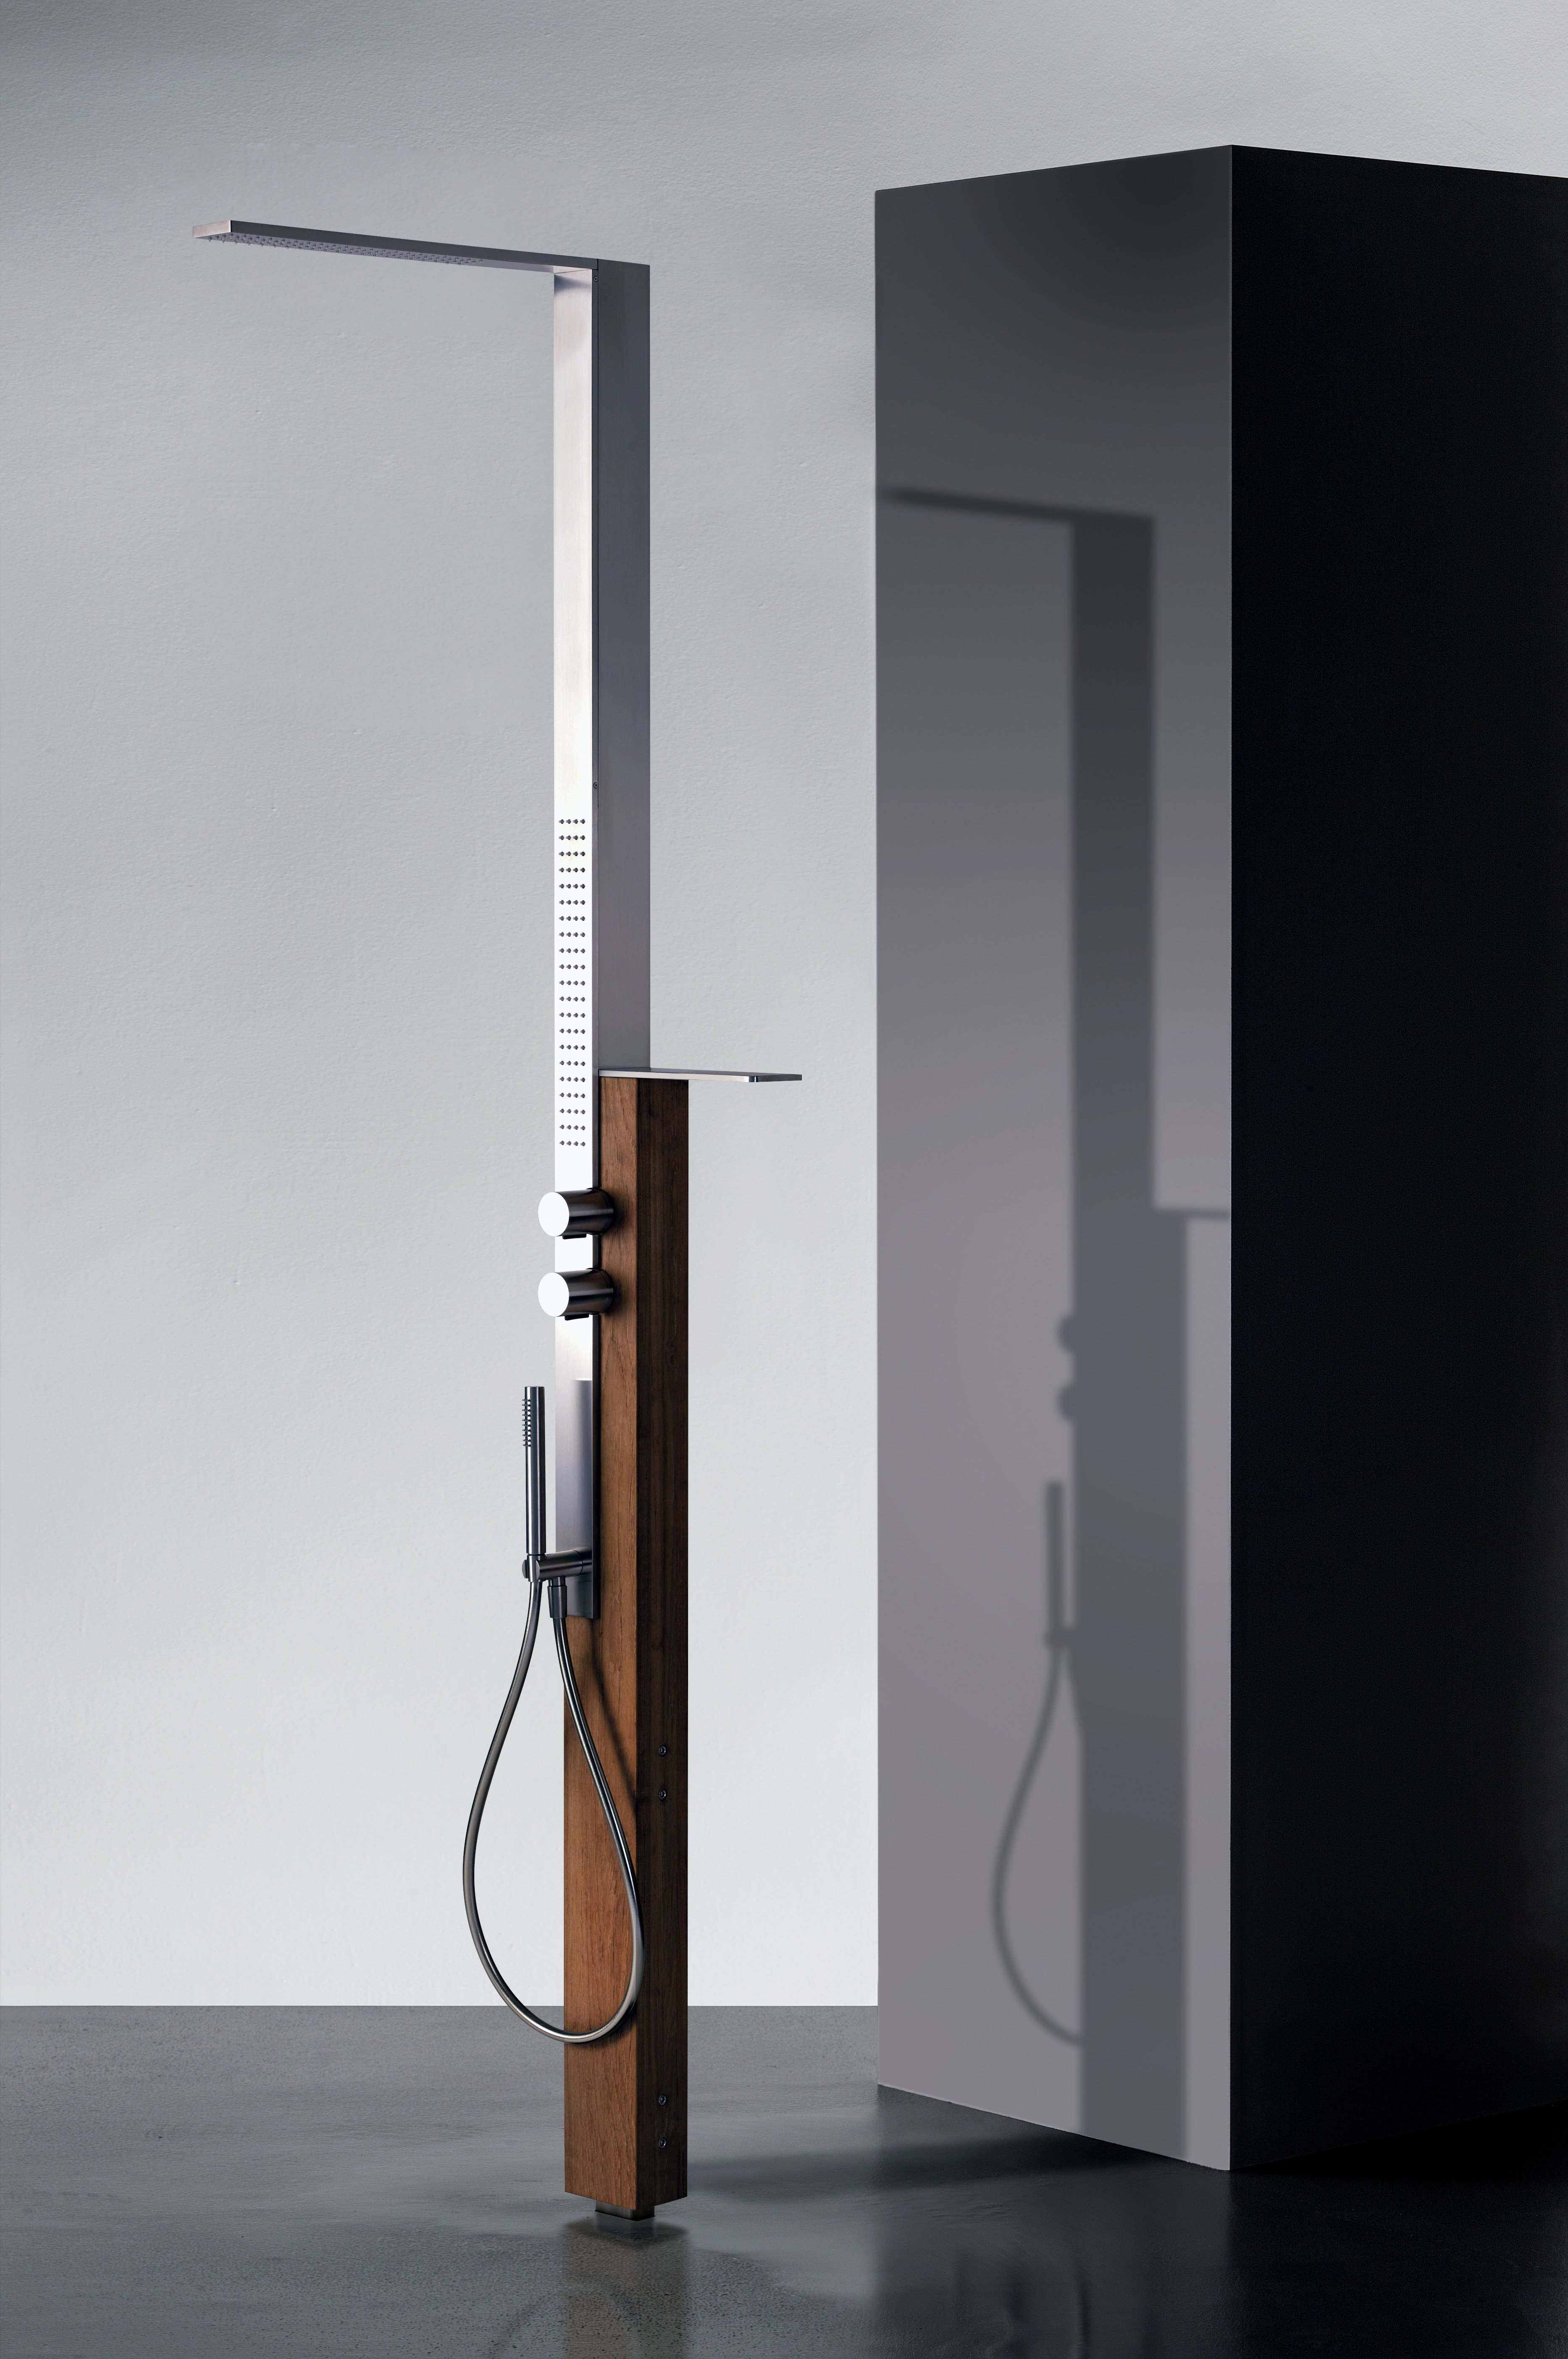 Some spas have outdoor showers, but hoteliers have to be sure the shower equipment can stand up to the elements. Fantini, for example, uses marine-grade stainless steel and Burma teak wood.